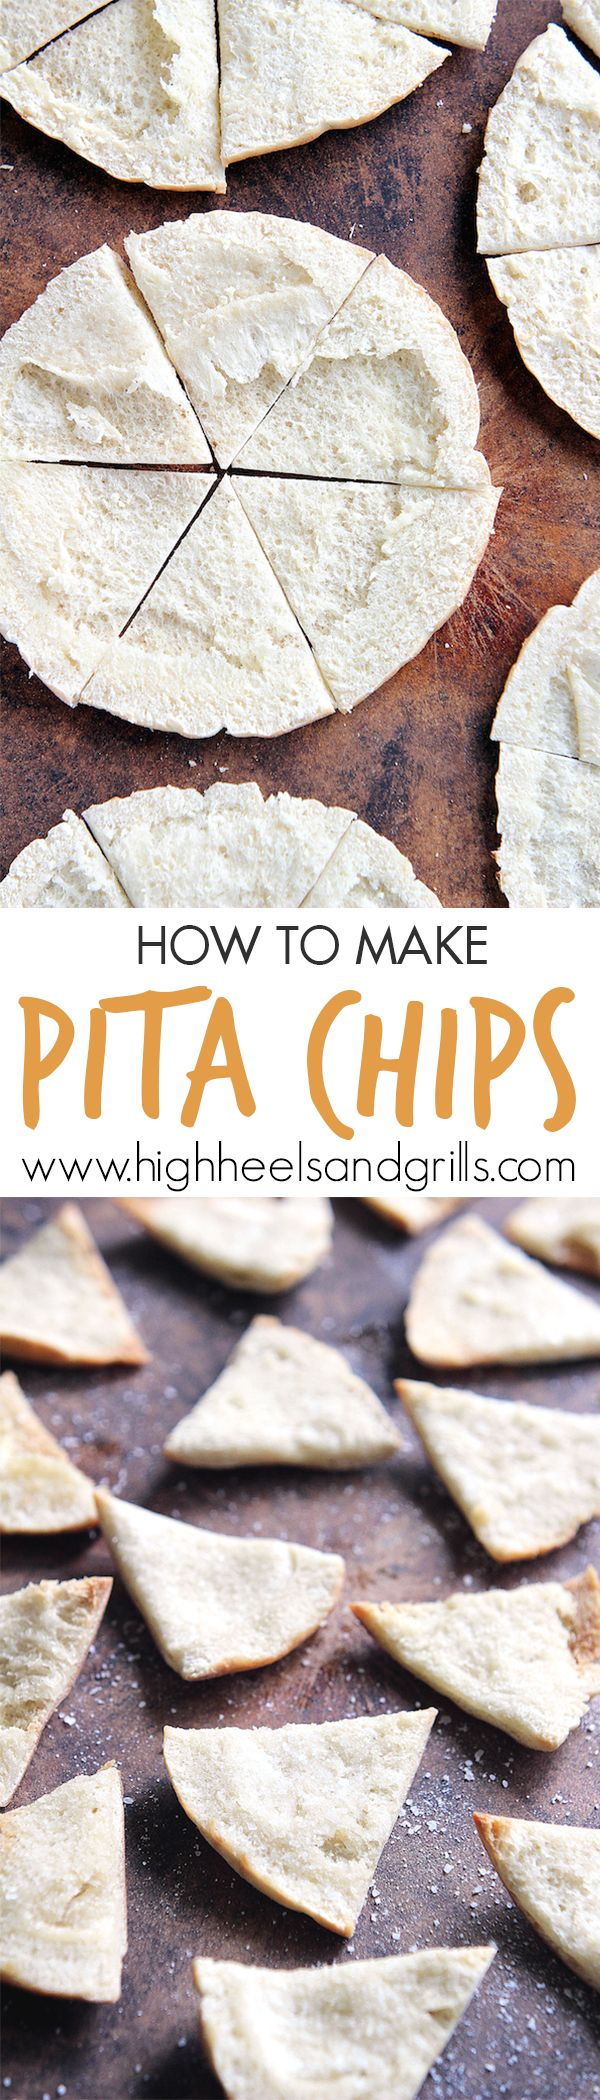 How to Make Pita Chips, the easy way. These are so good and taste way better…